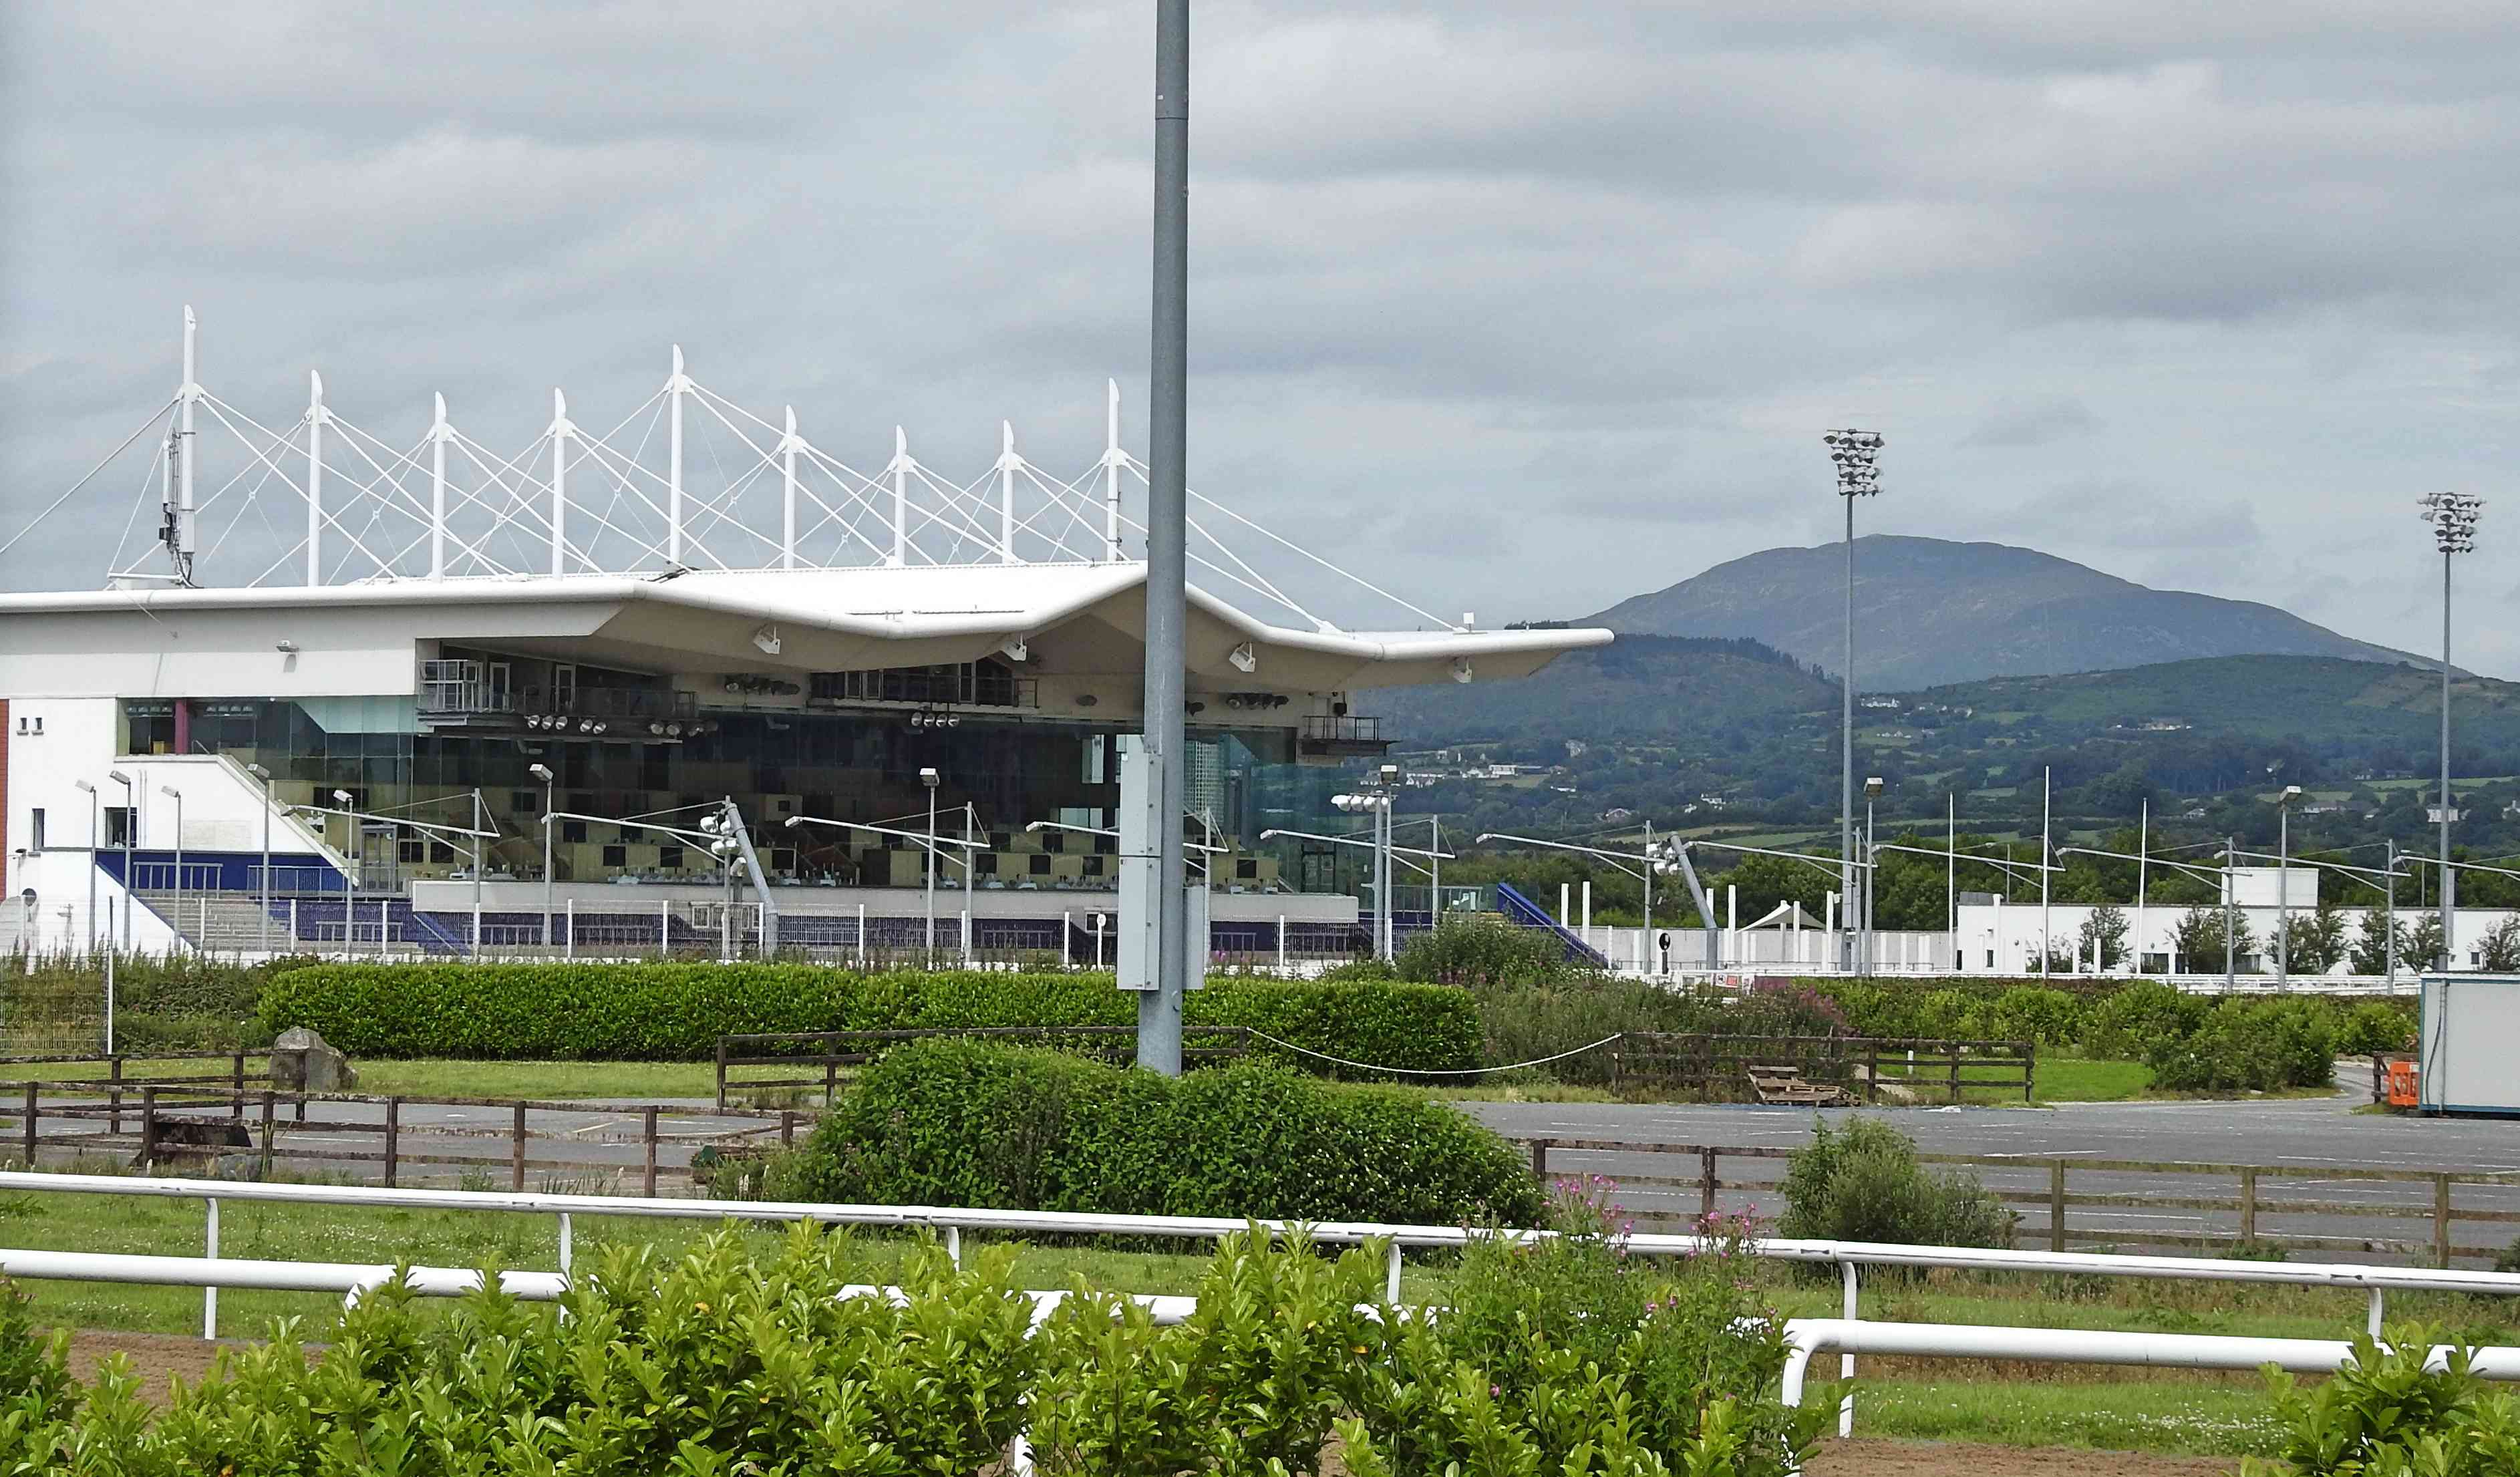 Outside Dundalk Stadium, a racecourse stadium for dog and horse racing with mountains in the background